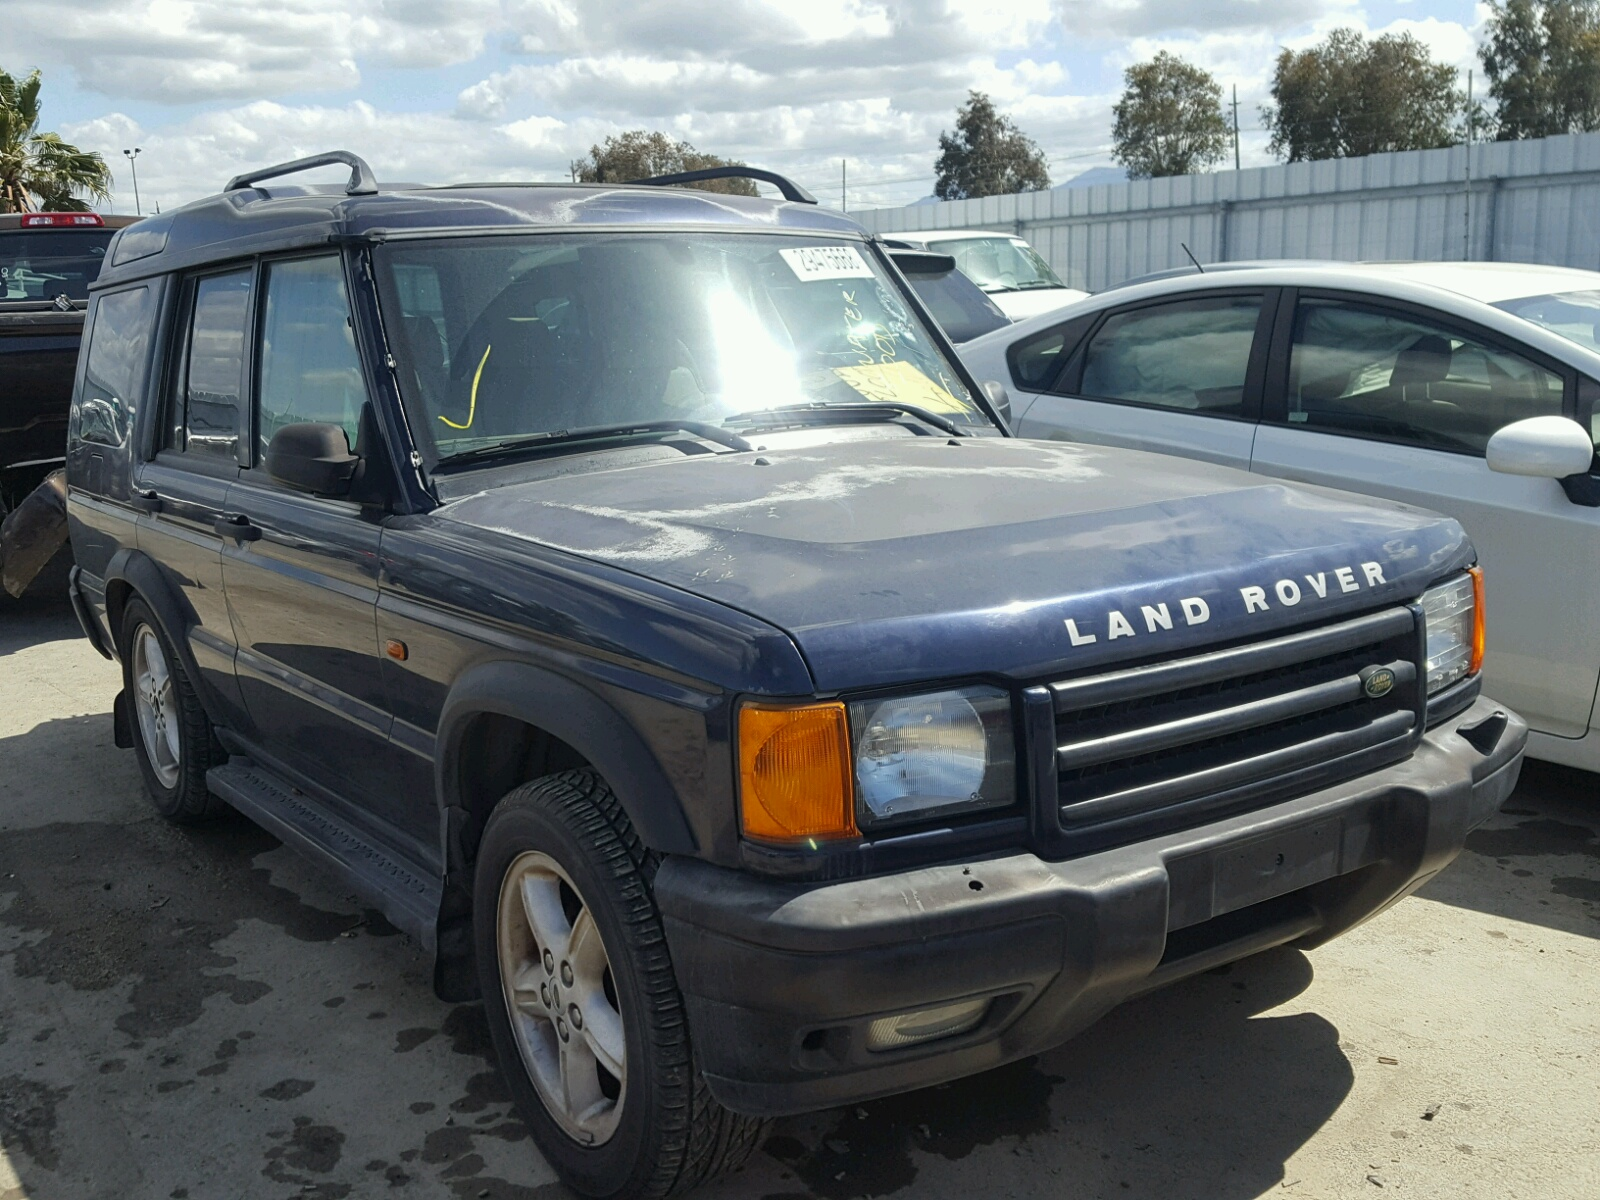 cars ma rover north lot hse sale billerica for at land landrover copart